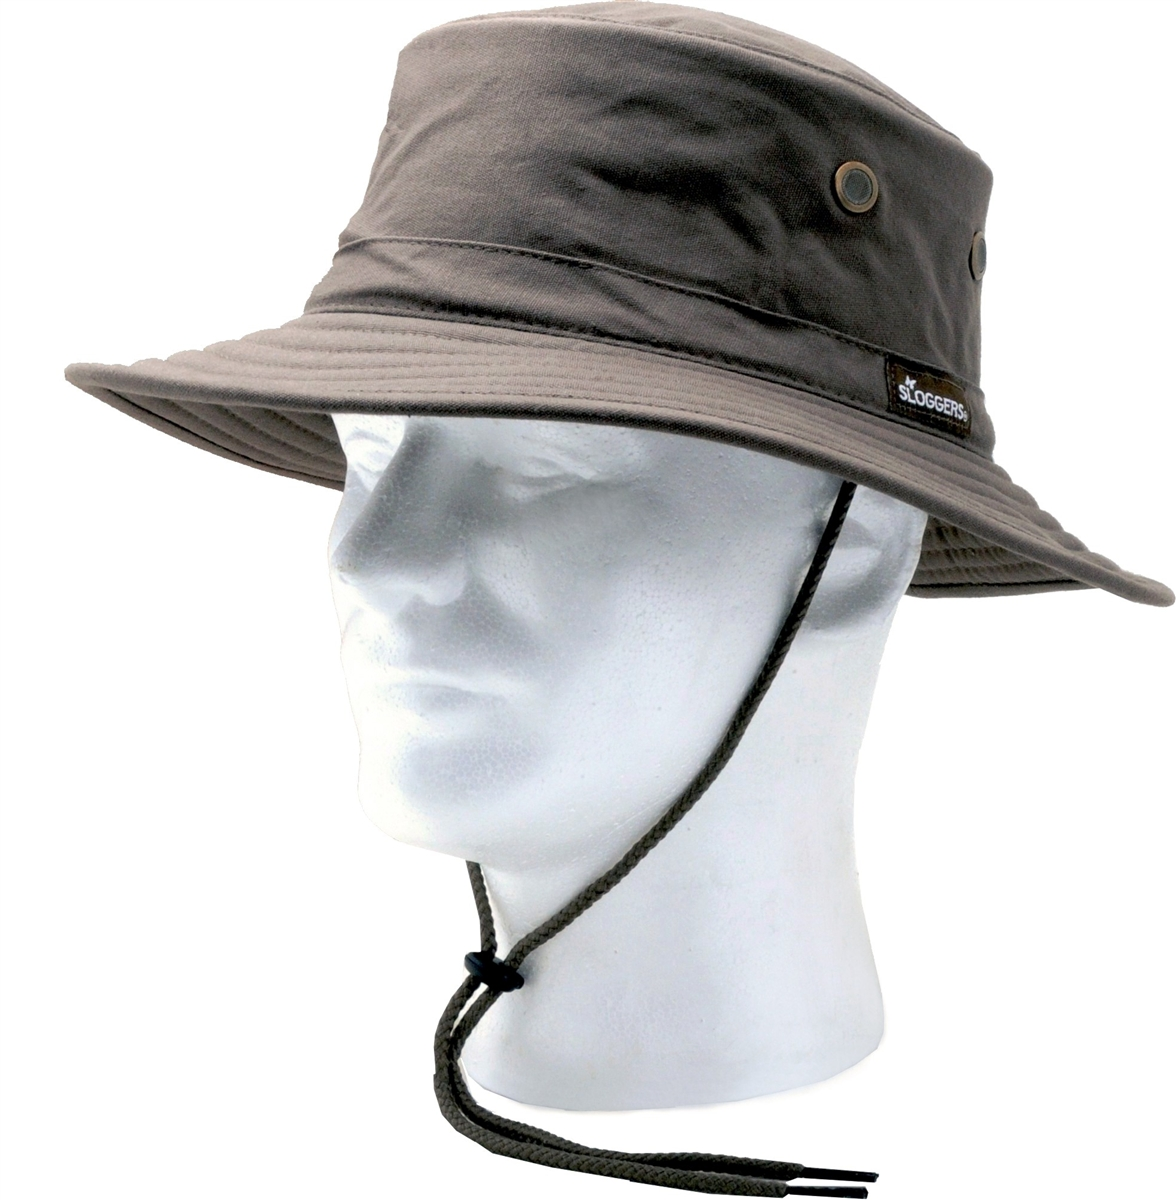 Sloggers Cotton Sun Hat with Wind Lanyard UPF 50+ Maximum Sun Protection c11ac2c30ed